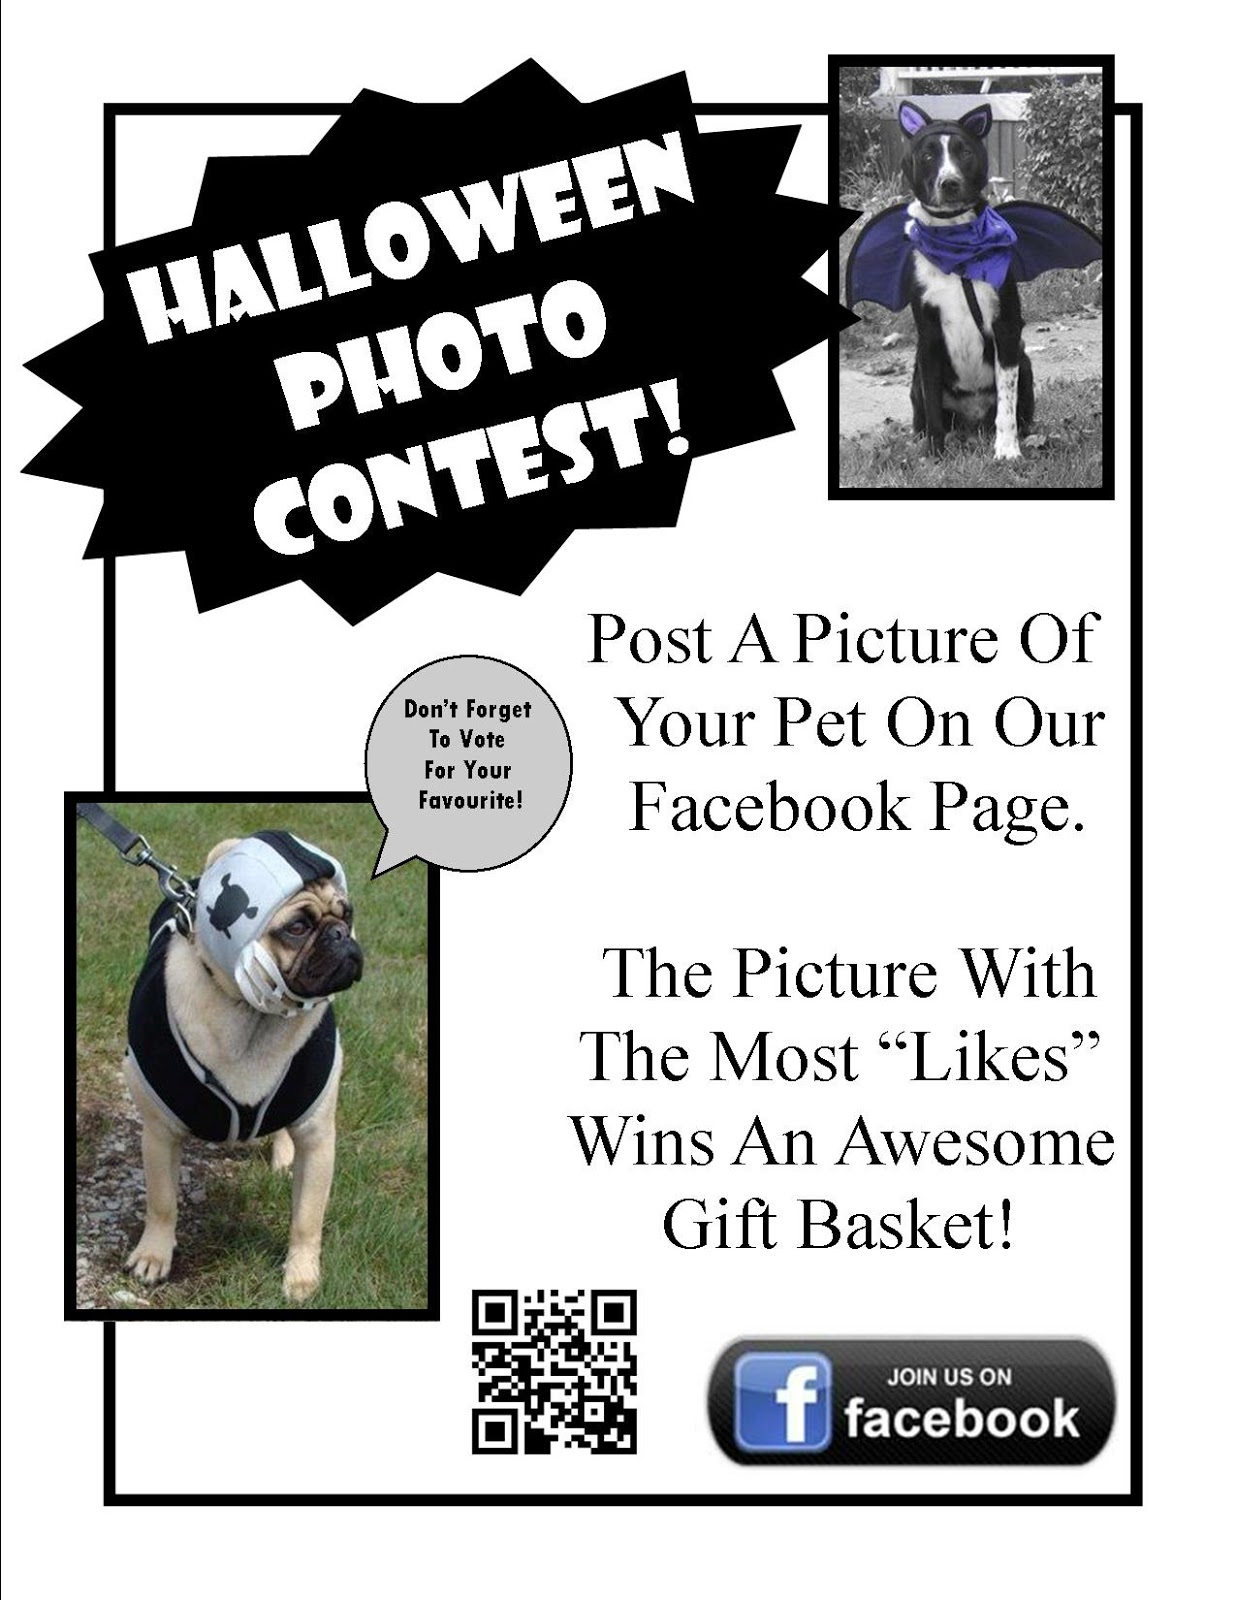 royal city animal hospital halloween pet costume contest